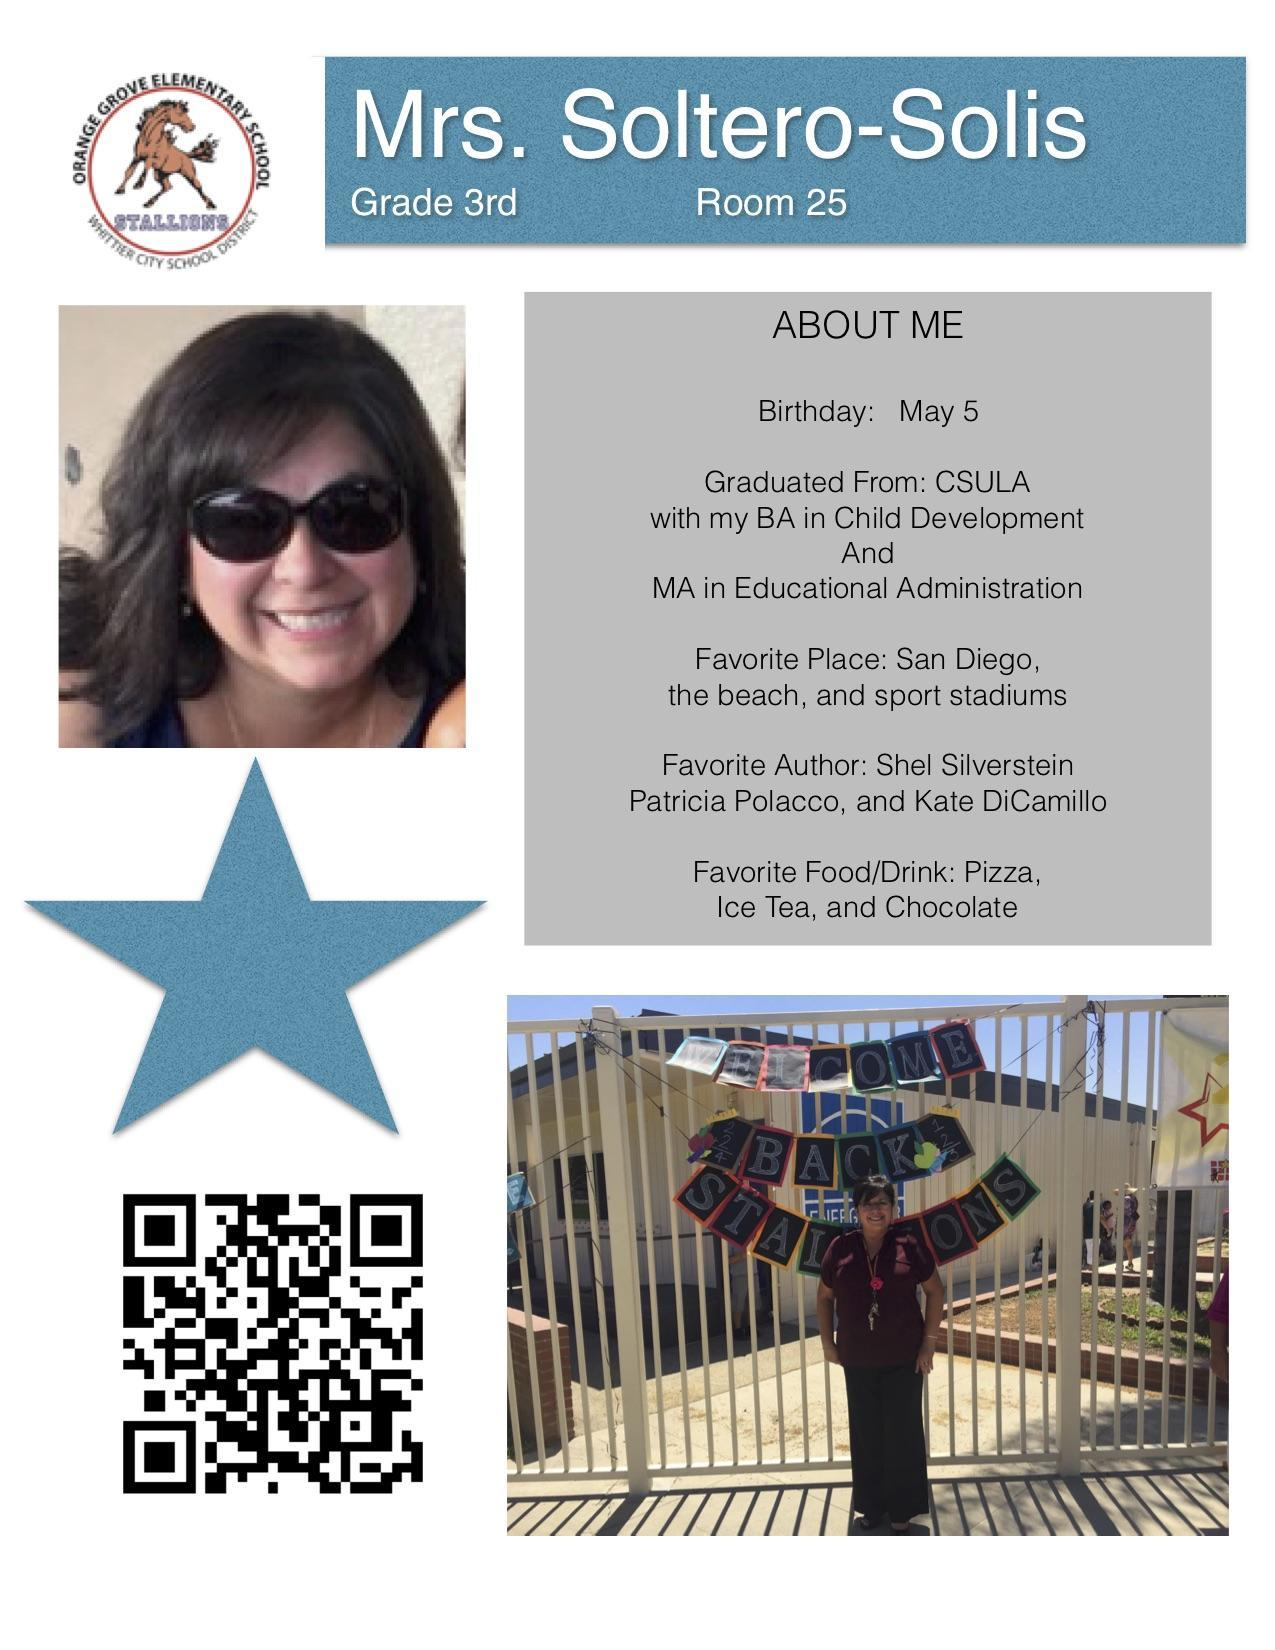 staff flyer for Mrs. Soltero-Solis